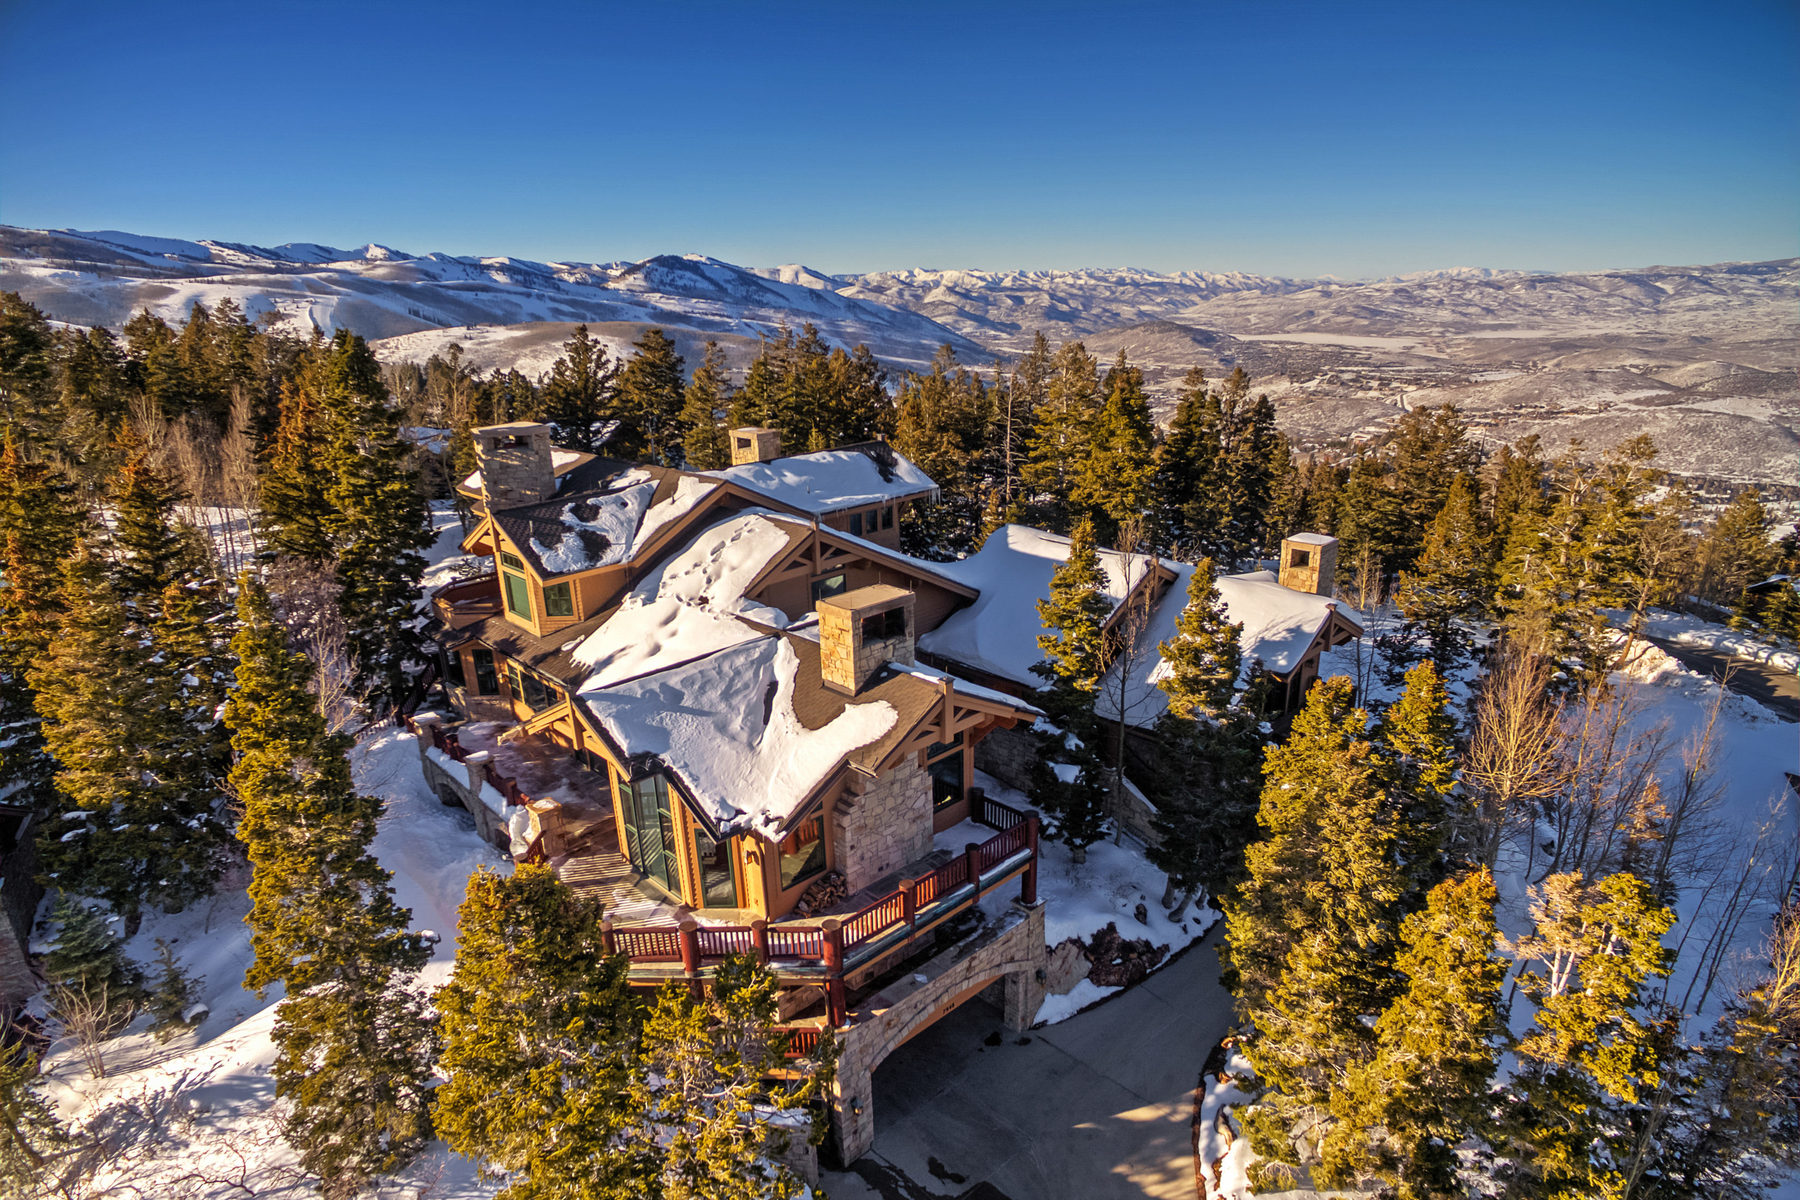 Casa Unifamiliar por un Venta en Privacy, Luxury, Views and Ultimate Ski access in Bald Eagle community 7948 Red Tail Ct Park City, Utah, 84060 Estados Unidos